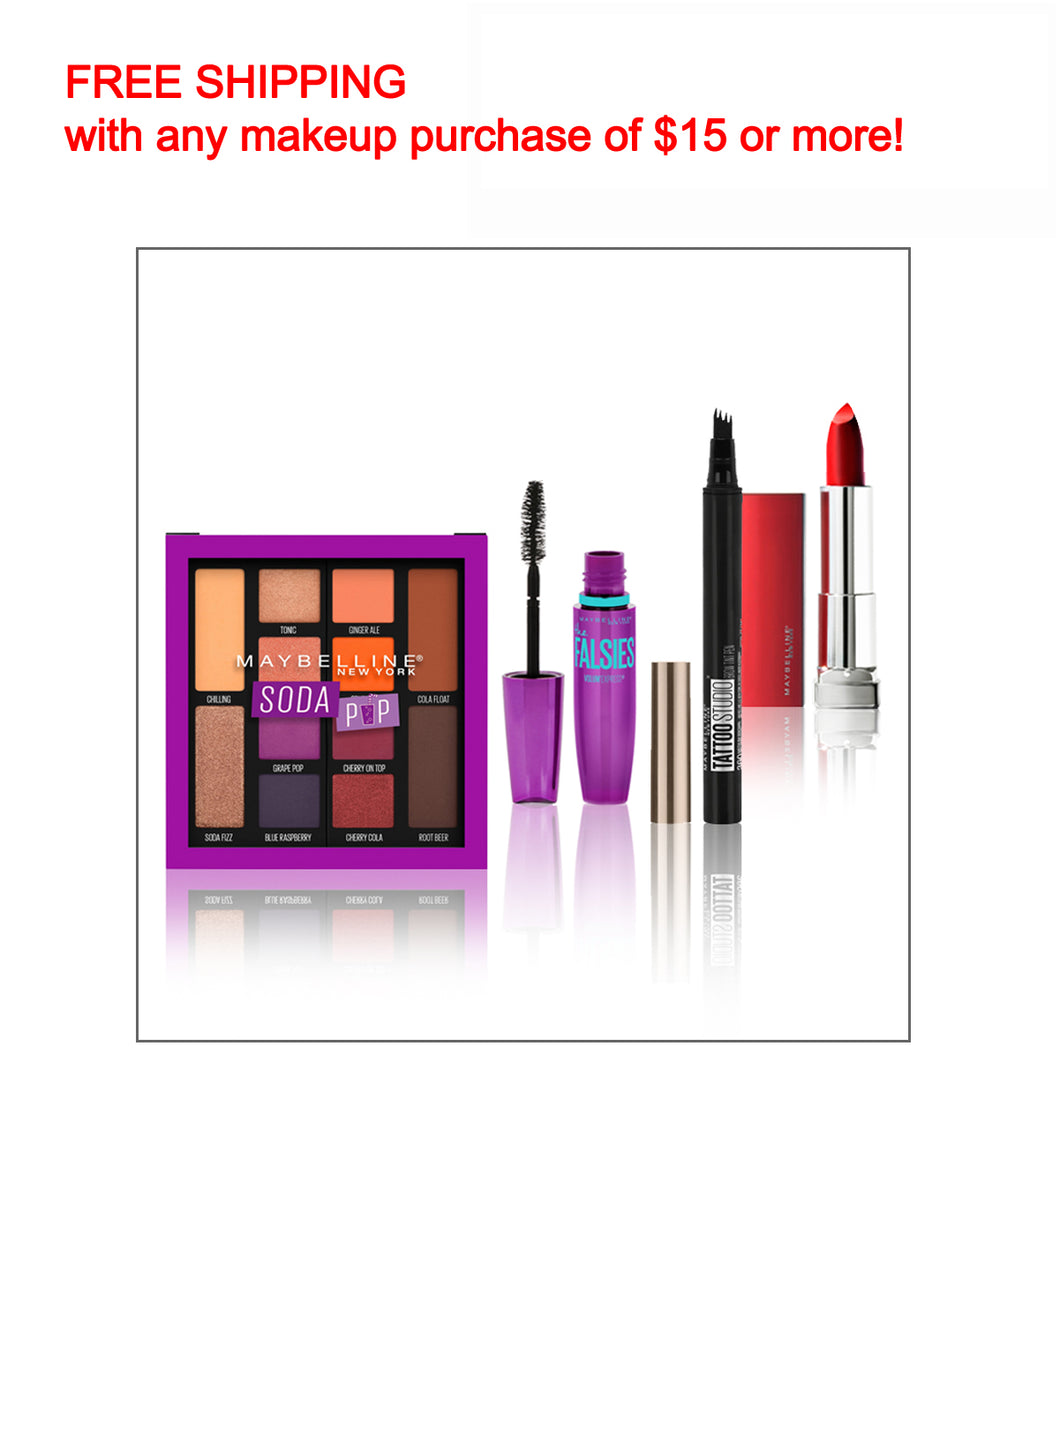 Maybelline Makeup Bundle